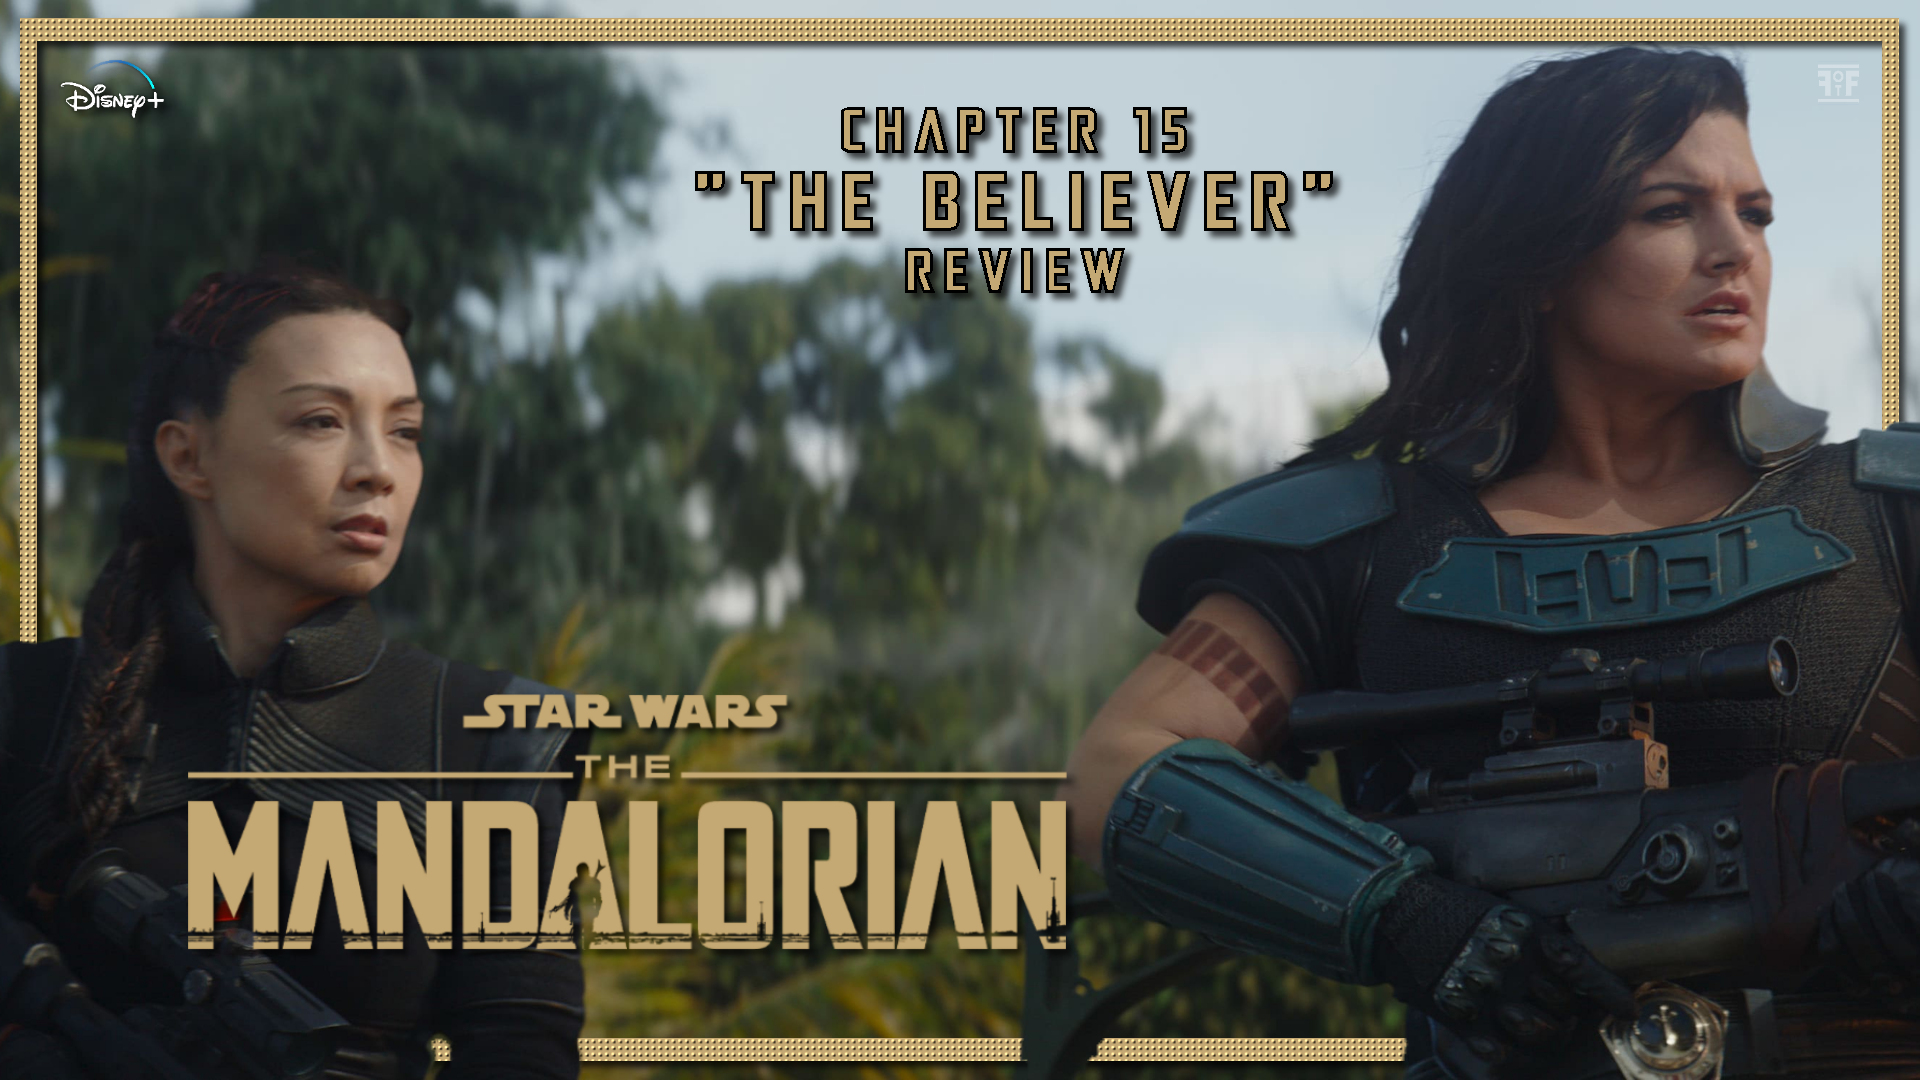 The Mandalorian Chapter 15 Review